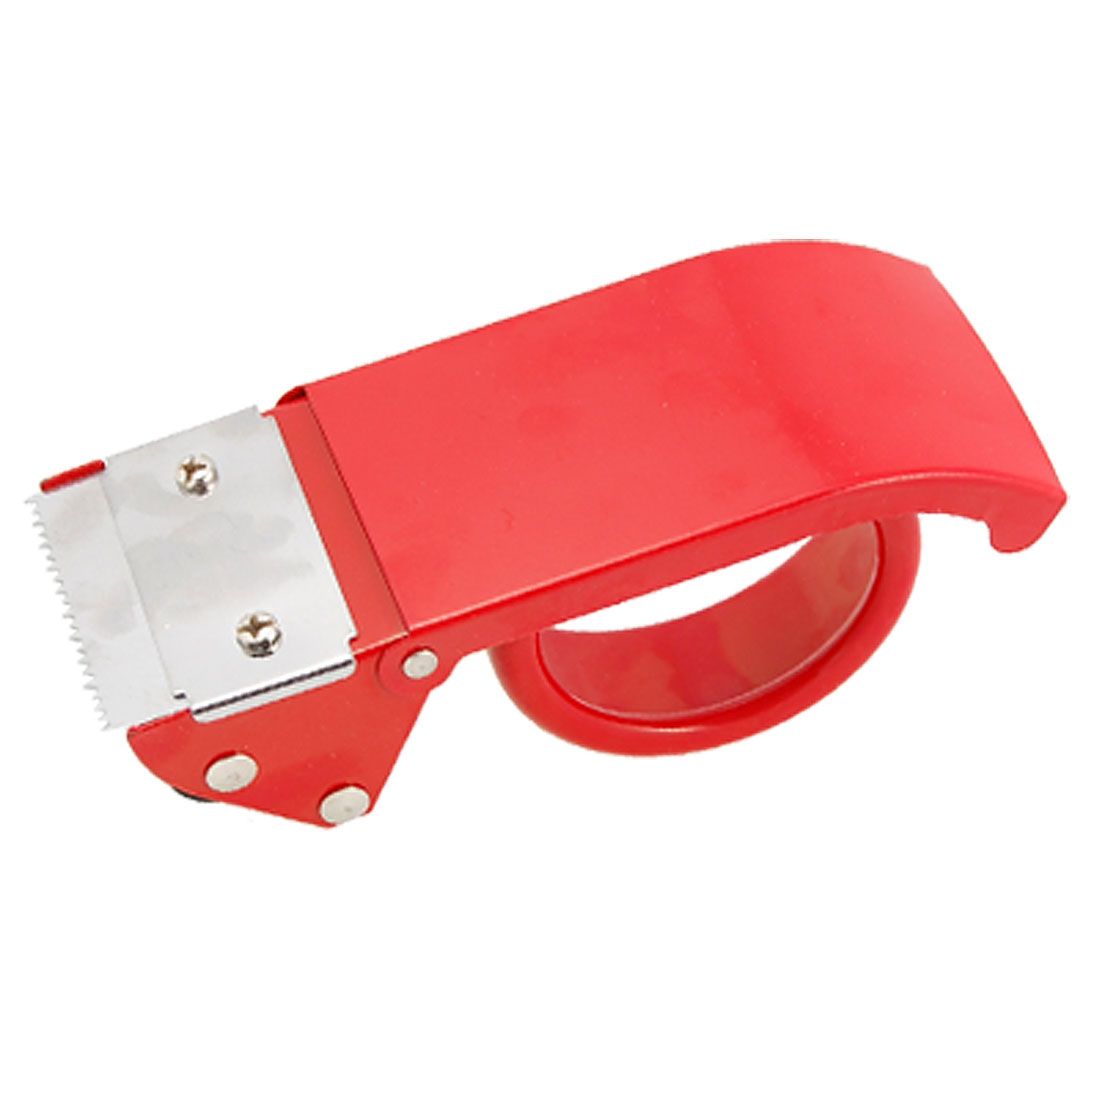 "Red Metal 2"" Wide Packaging Sealing Tape Gun Roll Dispenser Cutter"